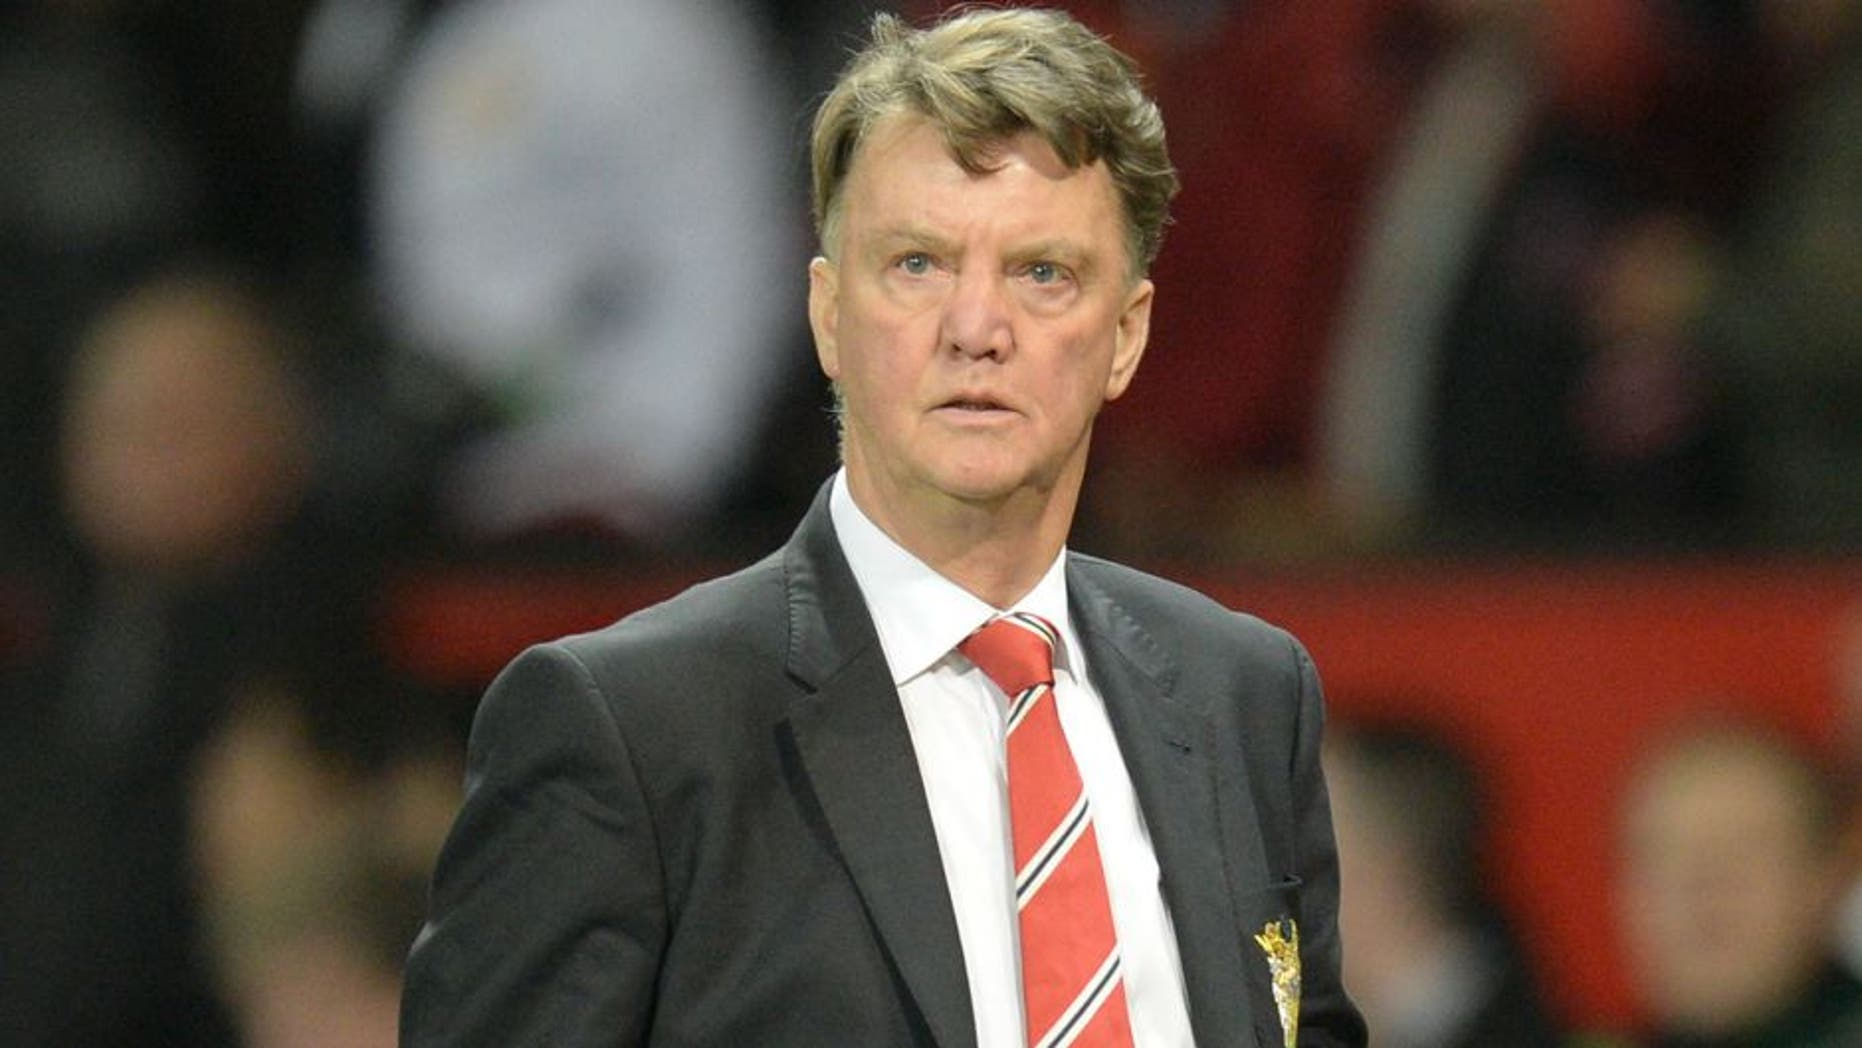 Manchester United's Dutch manager Louis van Gaal leaves the pitch after the final whistle of the English Premier League football match between Manchester United and Chelsea at Old Trafford in Manchester, north west England, on December 28, 2015. AFP PHOTO / OLI SCARFF RESTRICTED TO EDITORIAL USE. No use with unauthorized audio, video, data, fixture lists, club/league logos or 'live' services. Online in-match use limited to 75 images, no video emulation. No use in betting, games or single club/league/player publications. / AFP / OLI SCARFF (Photo credit should read OLI SCARFF/AFP/Getty Images)